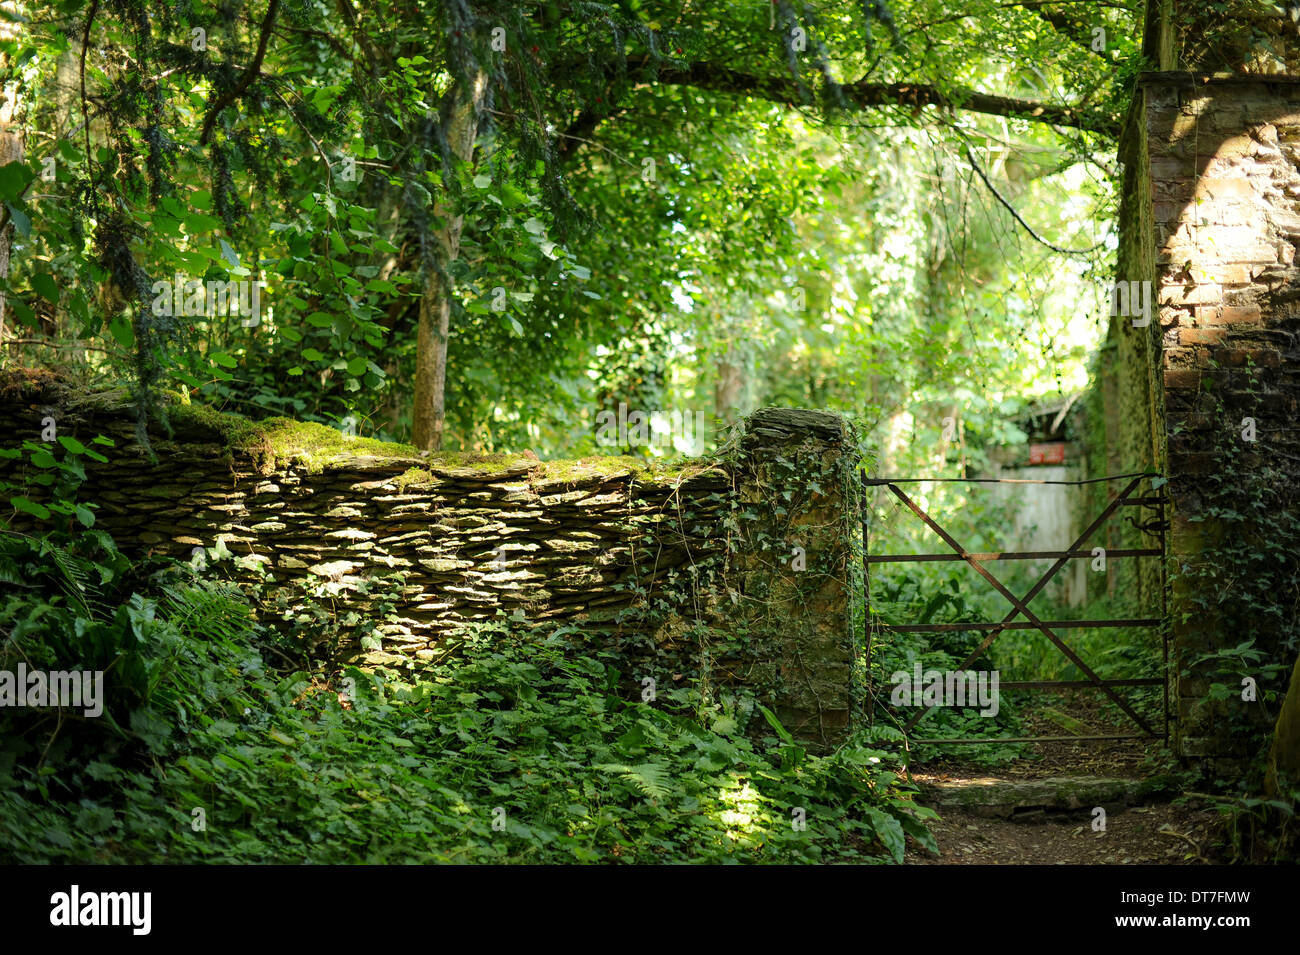 Old Stone Wall In Dappled Wood By An Iron Garden Gate